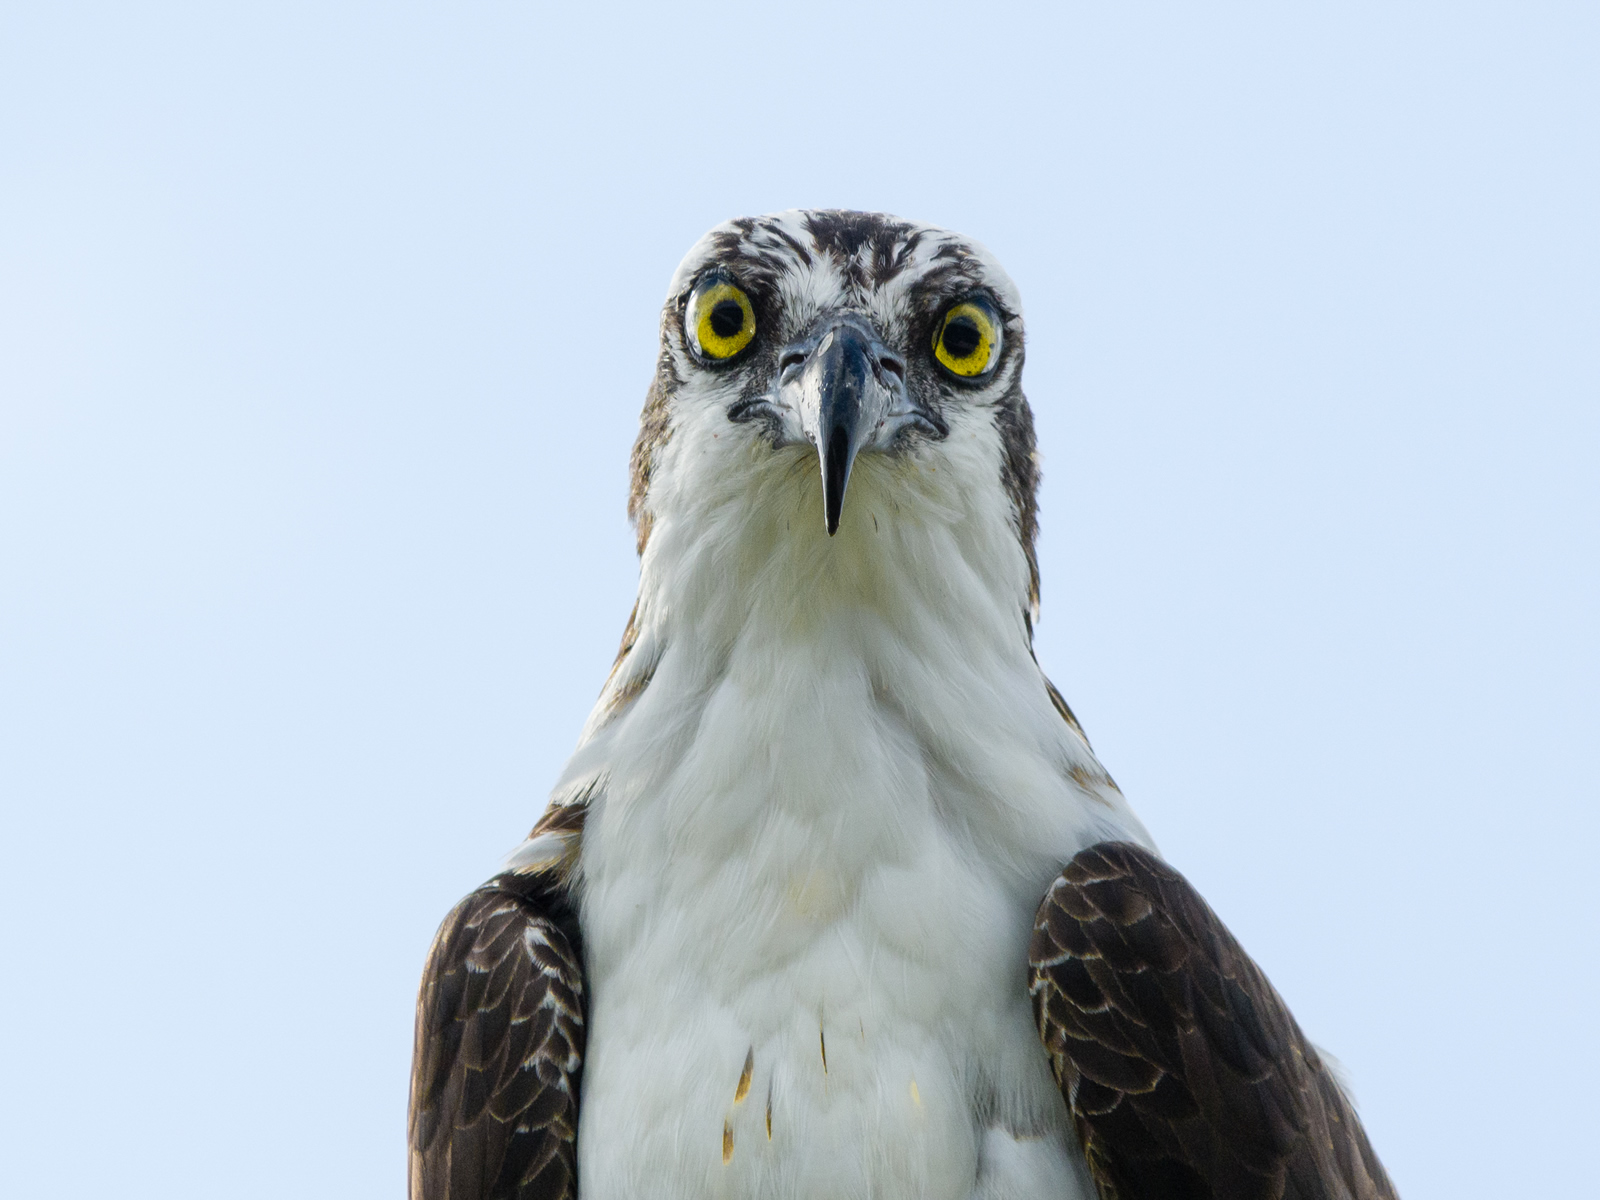 Ospreys are found on all the Earth's continents except for Antarctica. Photo: Jason Zangari/Audubon Photography Awards